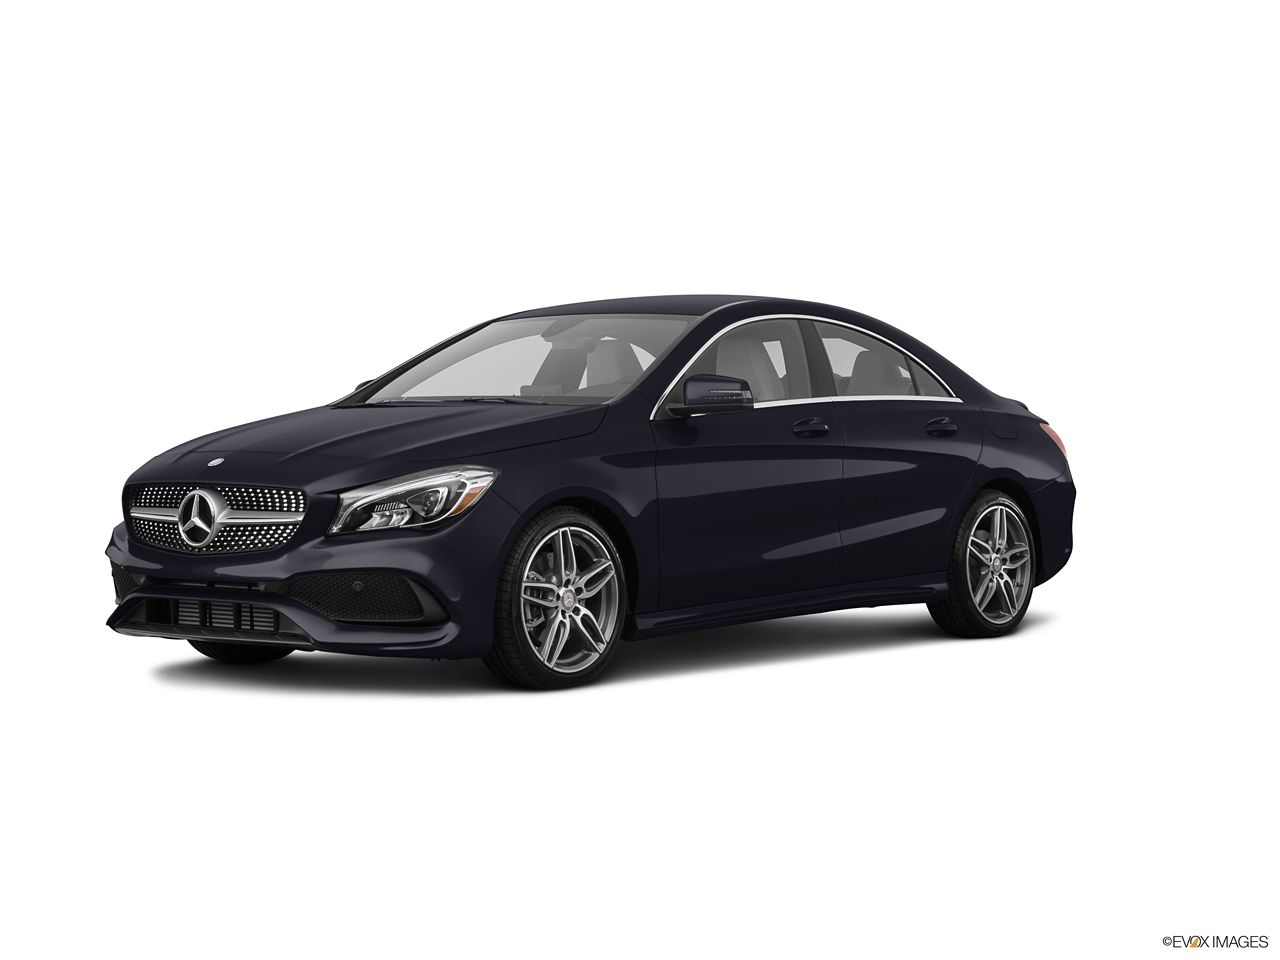 mercedes benz cla class 2017 cla 250 4matic in egypt new. Black Bedroom Furniture Sets. Home Design Ideas